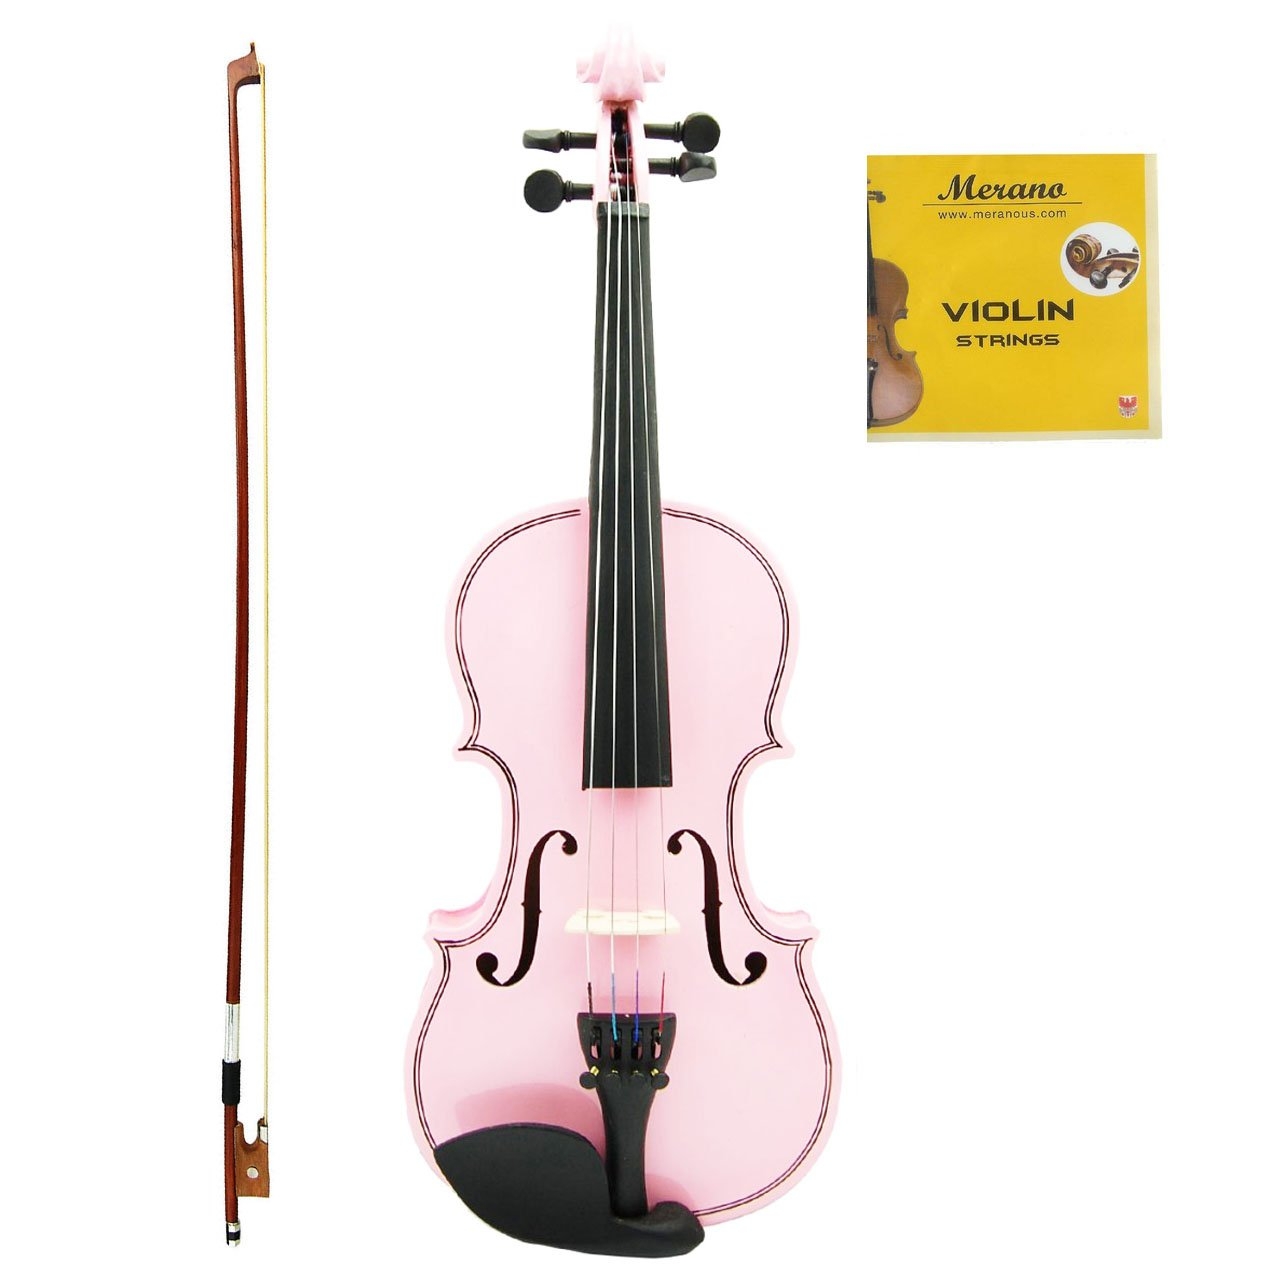 Merano MV100 Student Violin with Hard Case, Bow, Rosin and Extra Strings (1/8, Light Pink) by Merano (Image #1)